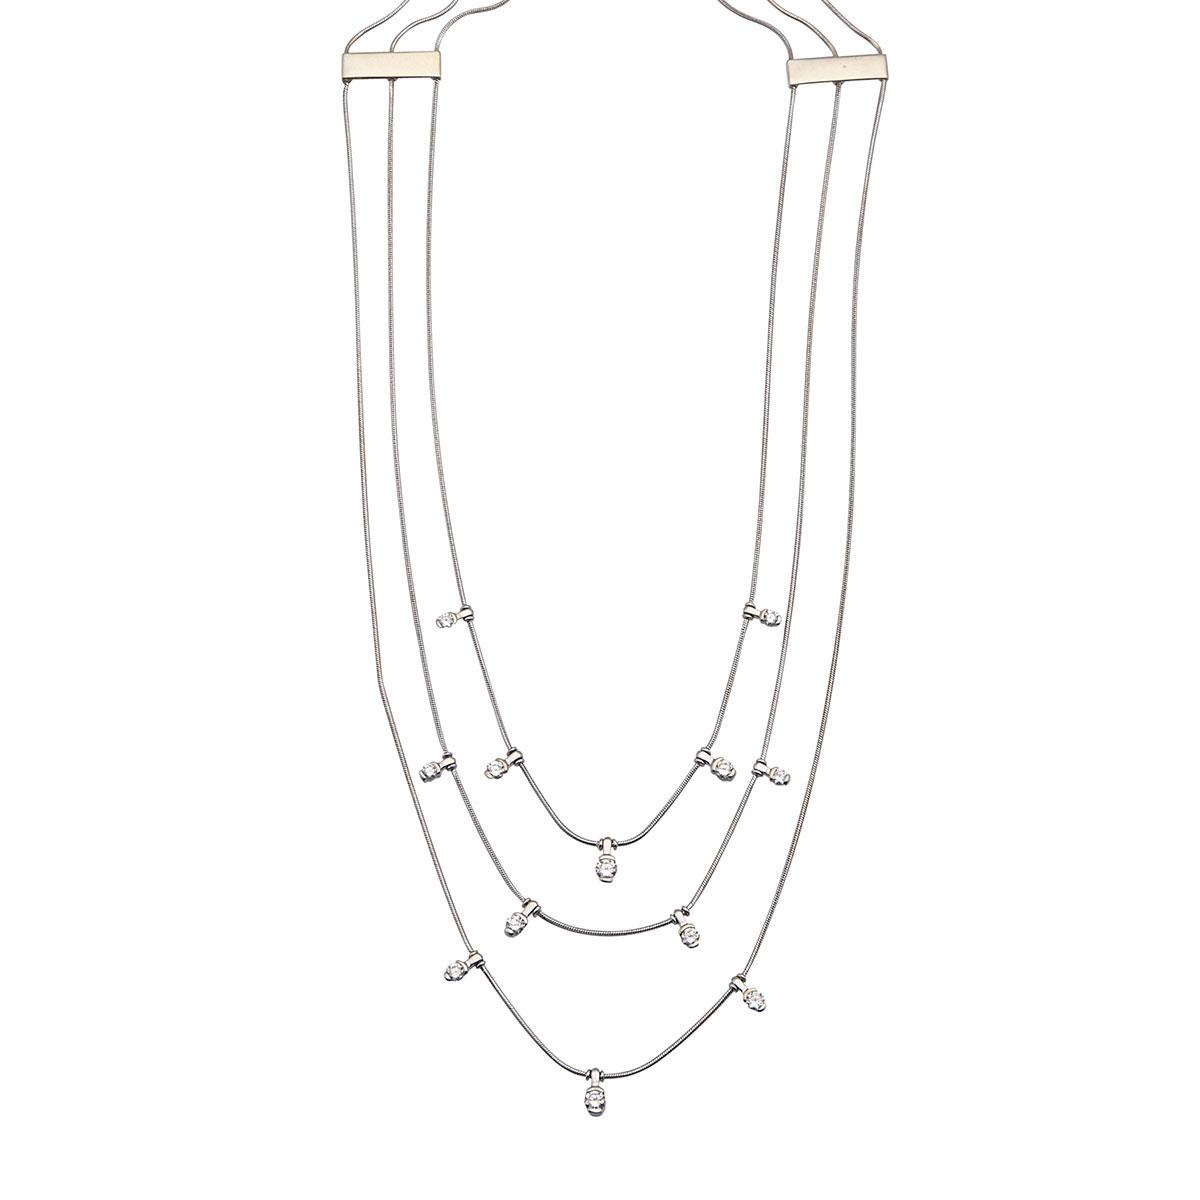 Jose Hess 18k White Gold Triple Strand Necklace